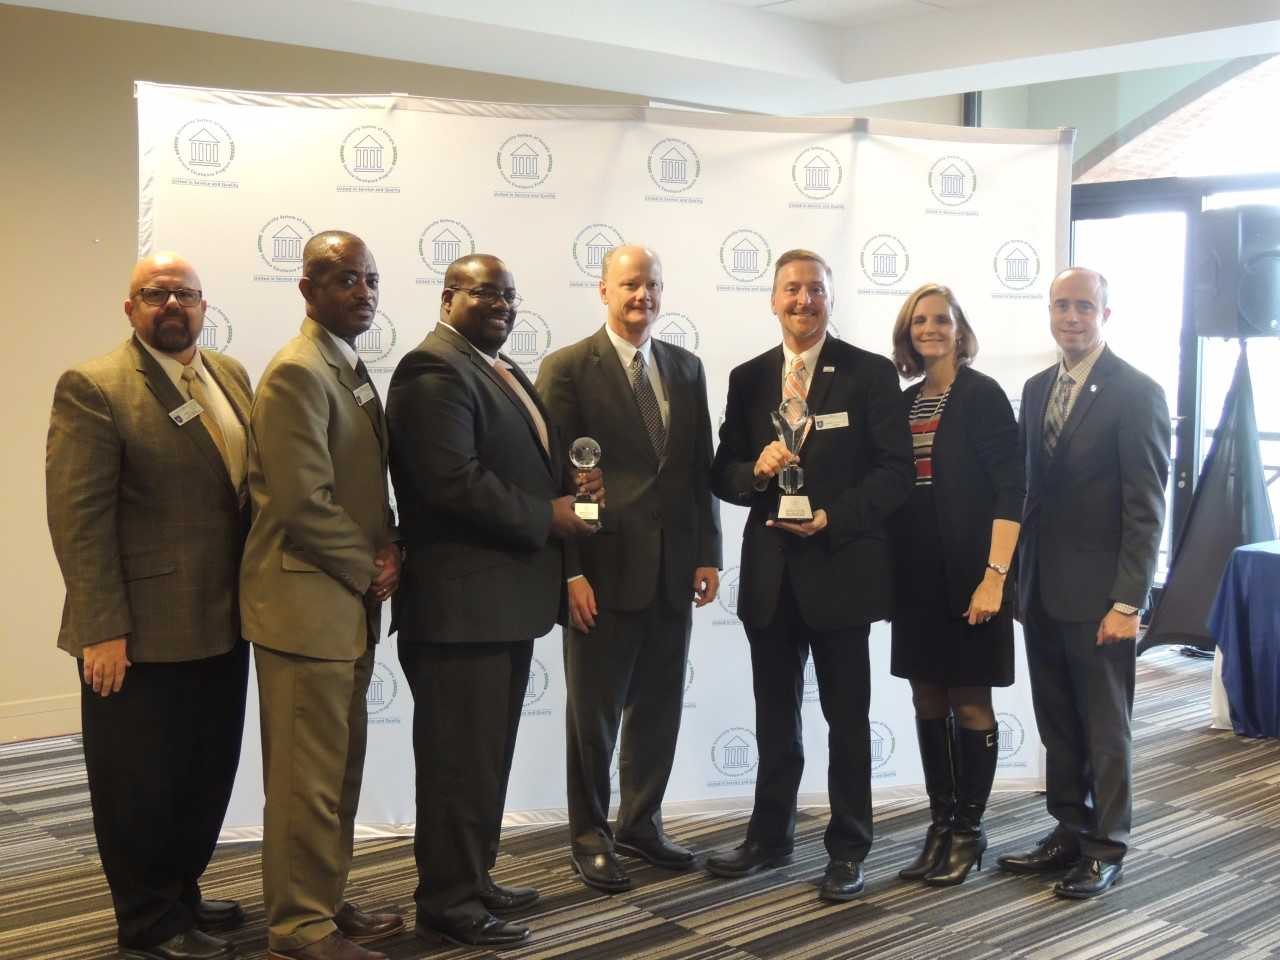 GHC earns top honors at the 2017 Chancellor's Annual Service Excellence Awards ceremony